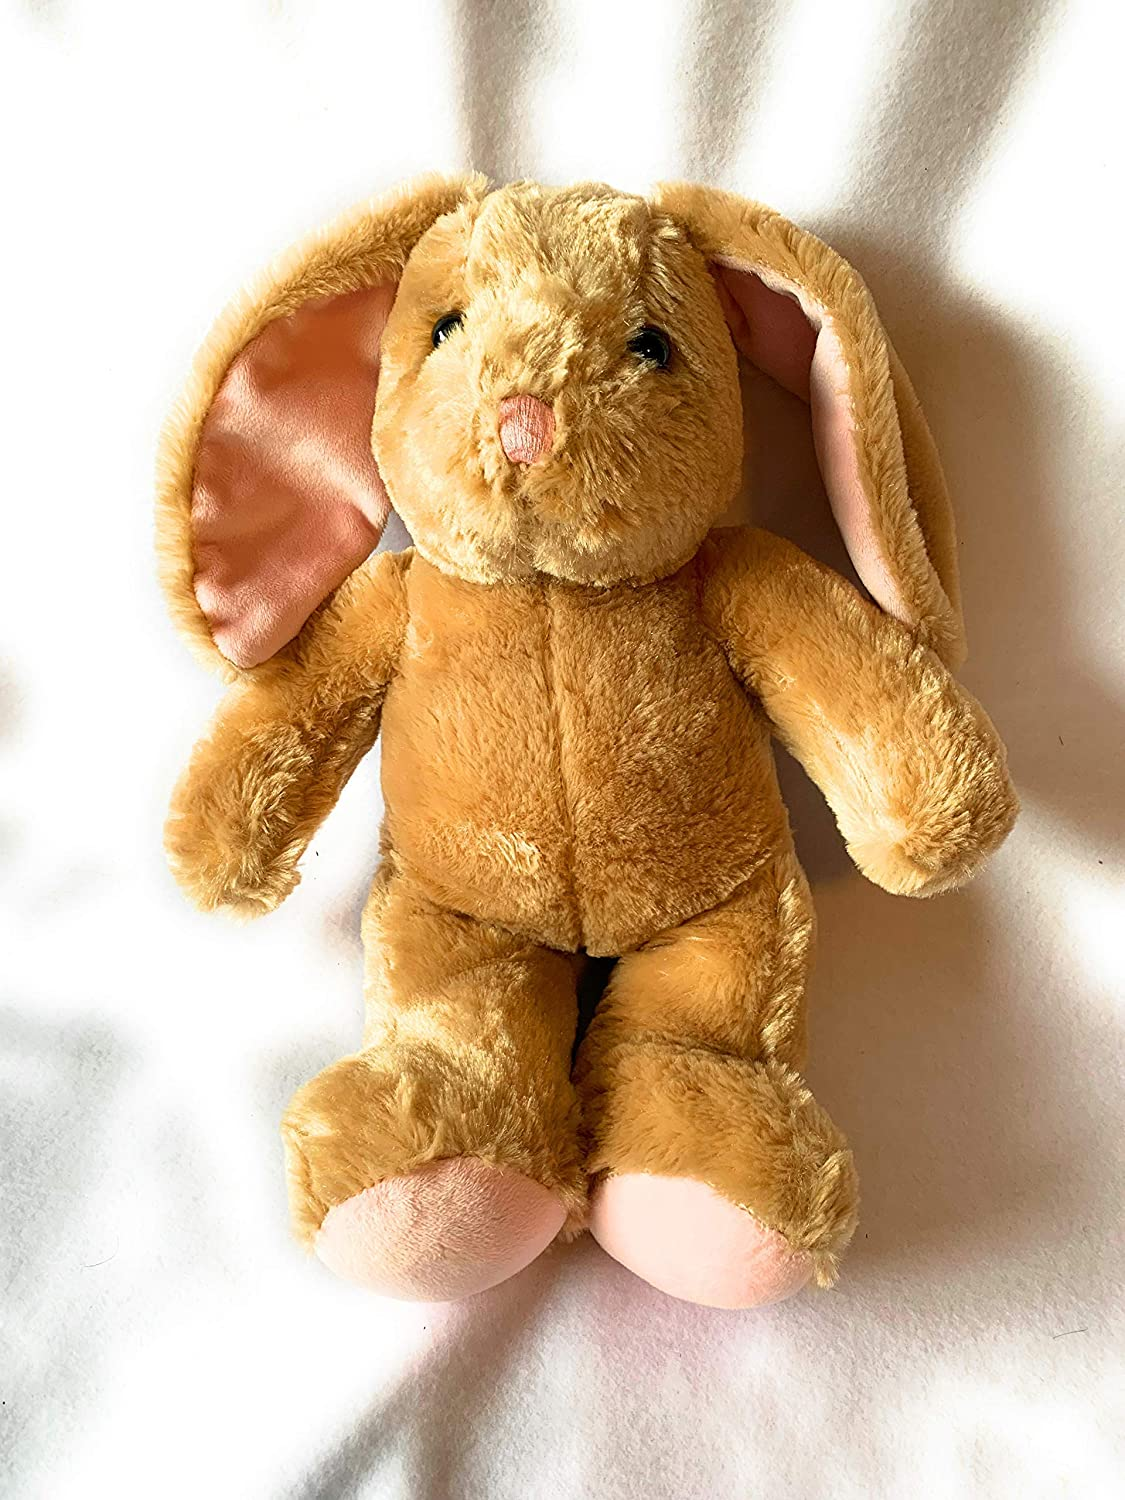 Weighted stuffed animal AUTISM WEIGHTED PLUSH weighted bunny sensory toy with 4 lbs